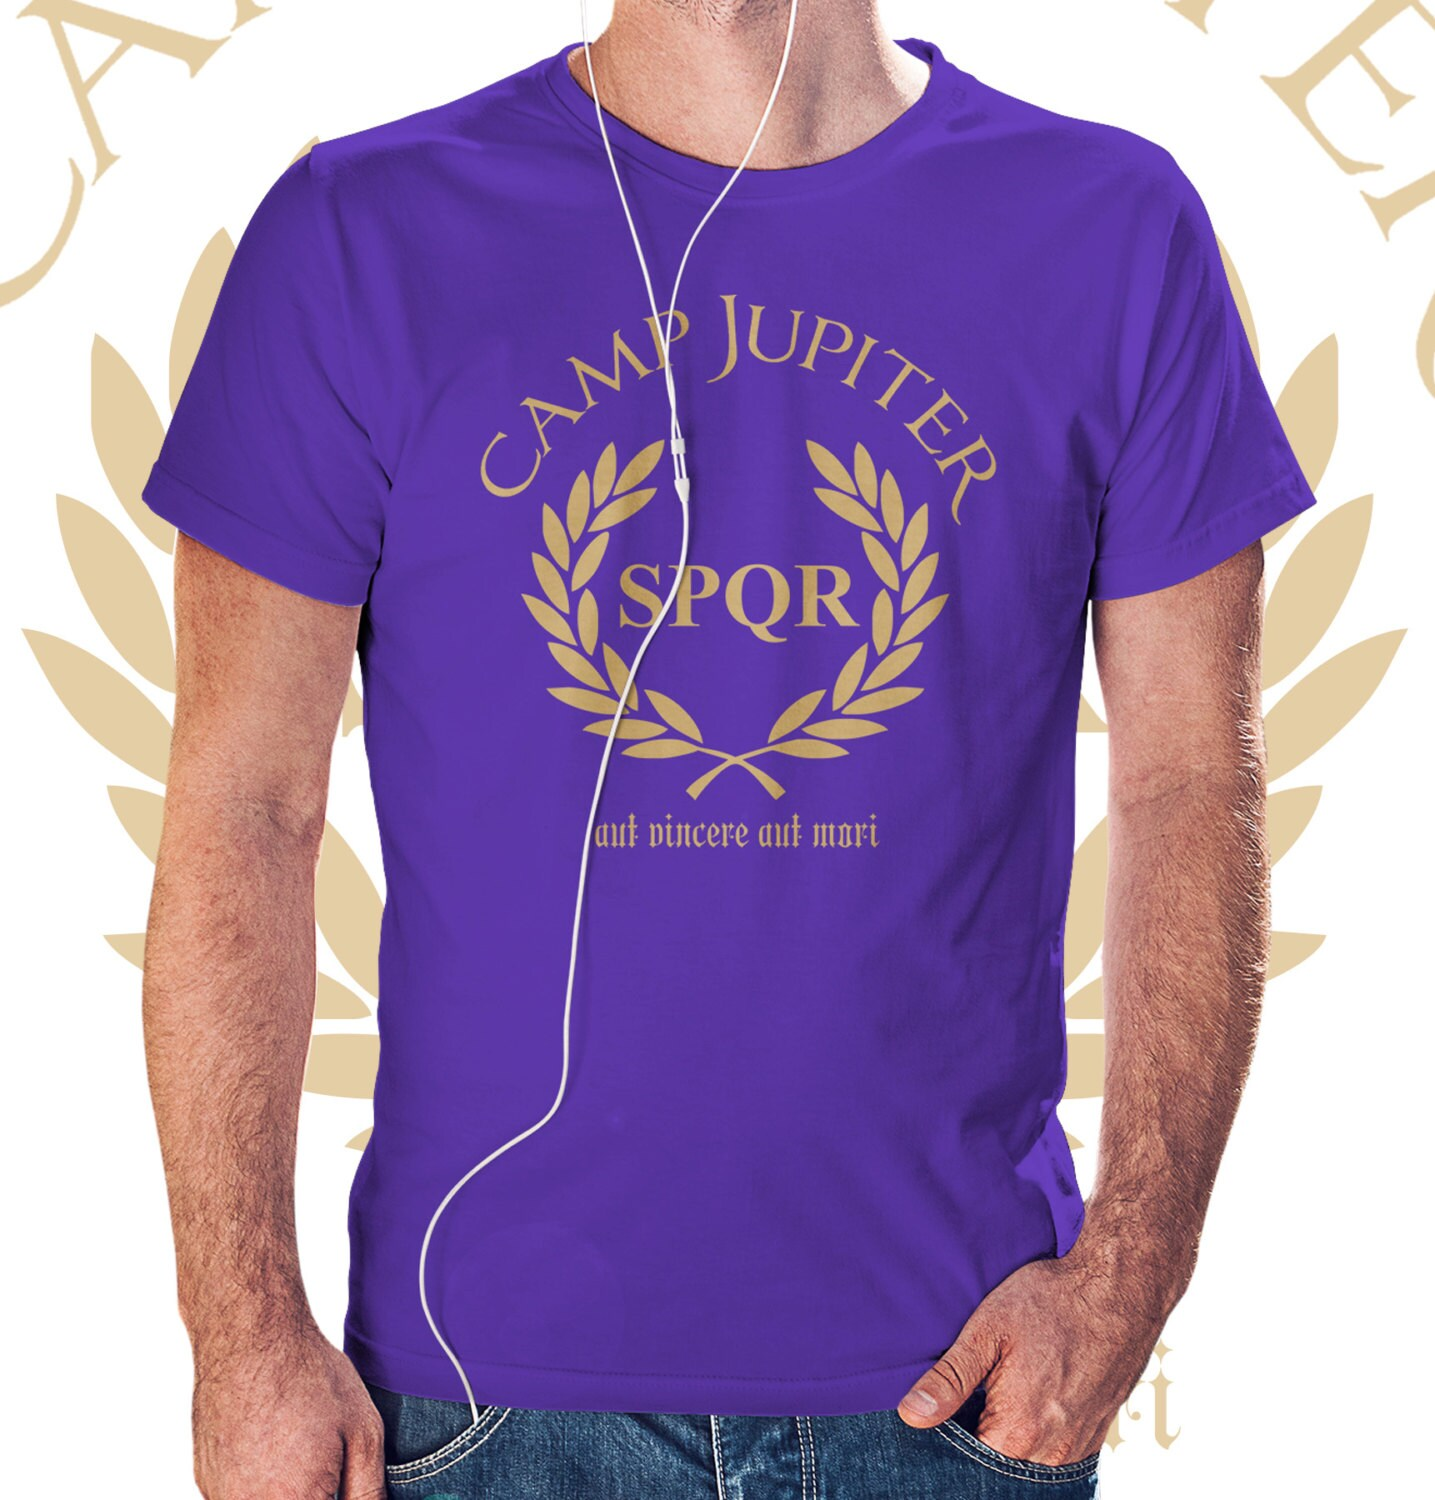 Camp Jupiter SPQR t shirt Percy Jackson and the Olympians